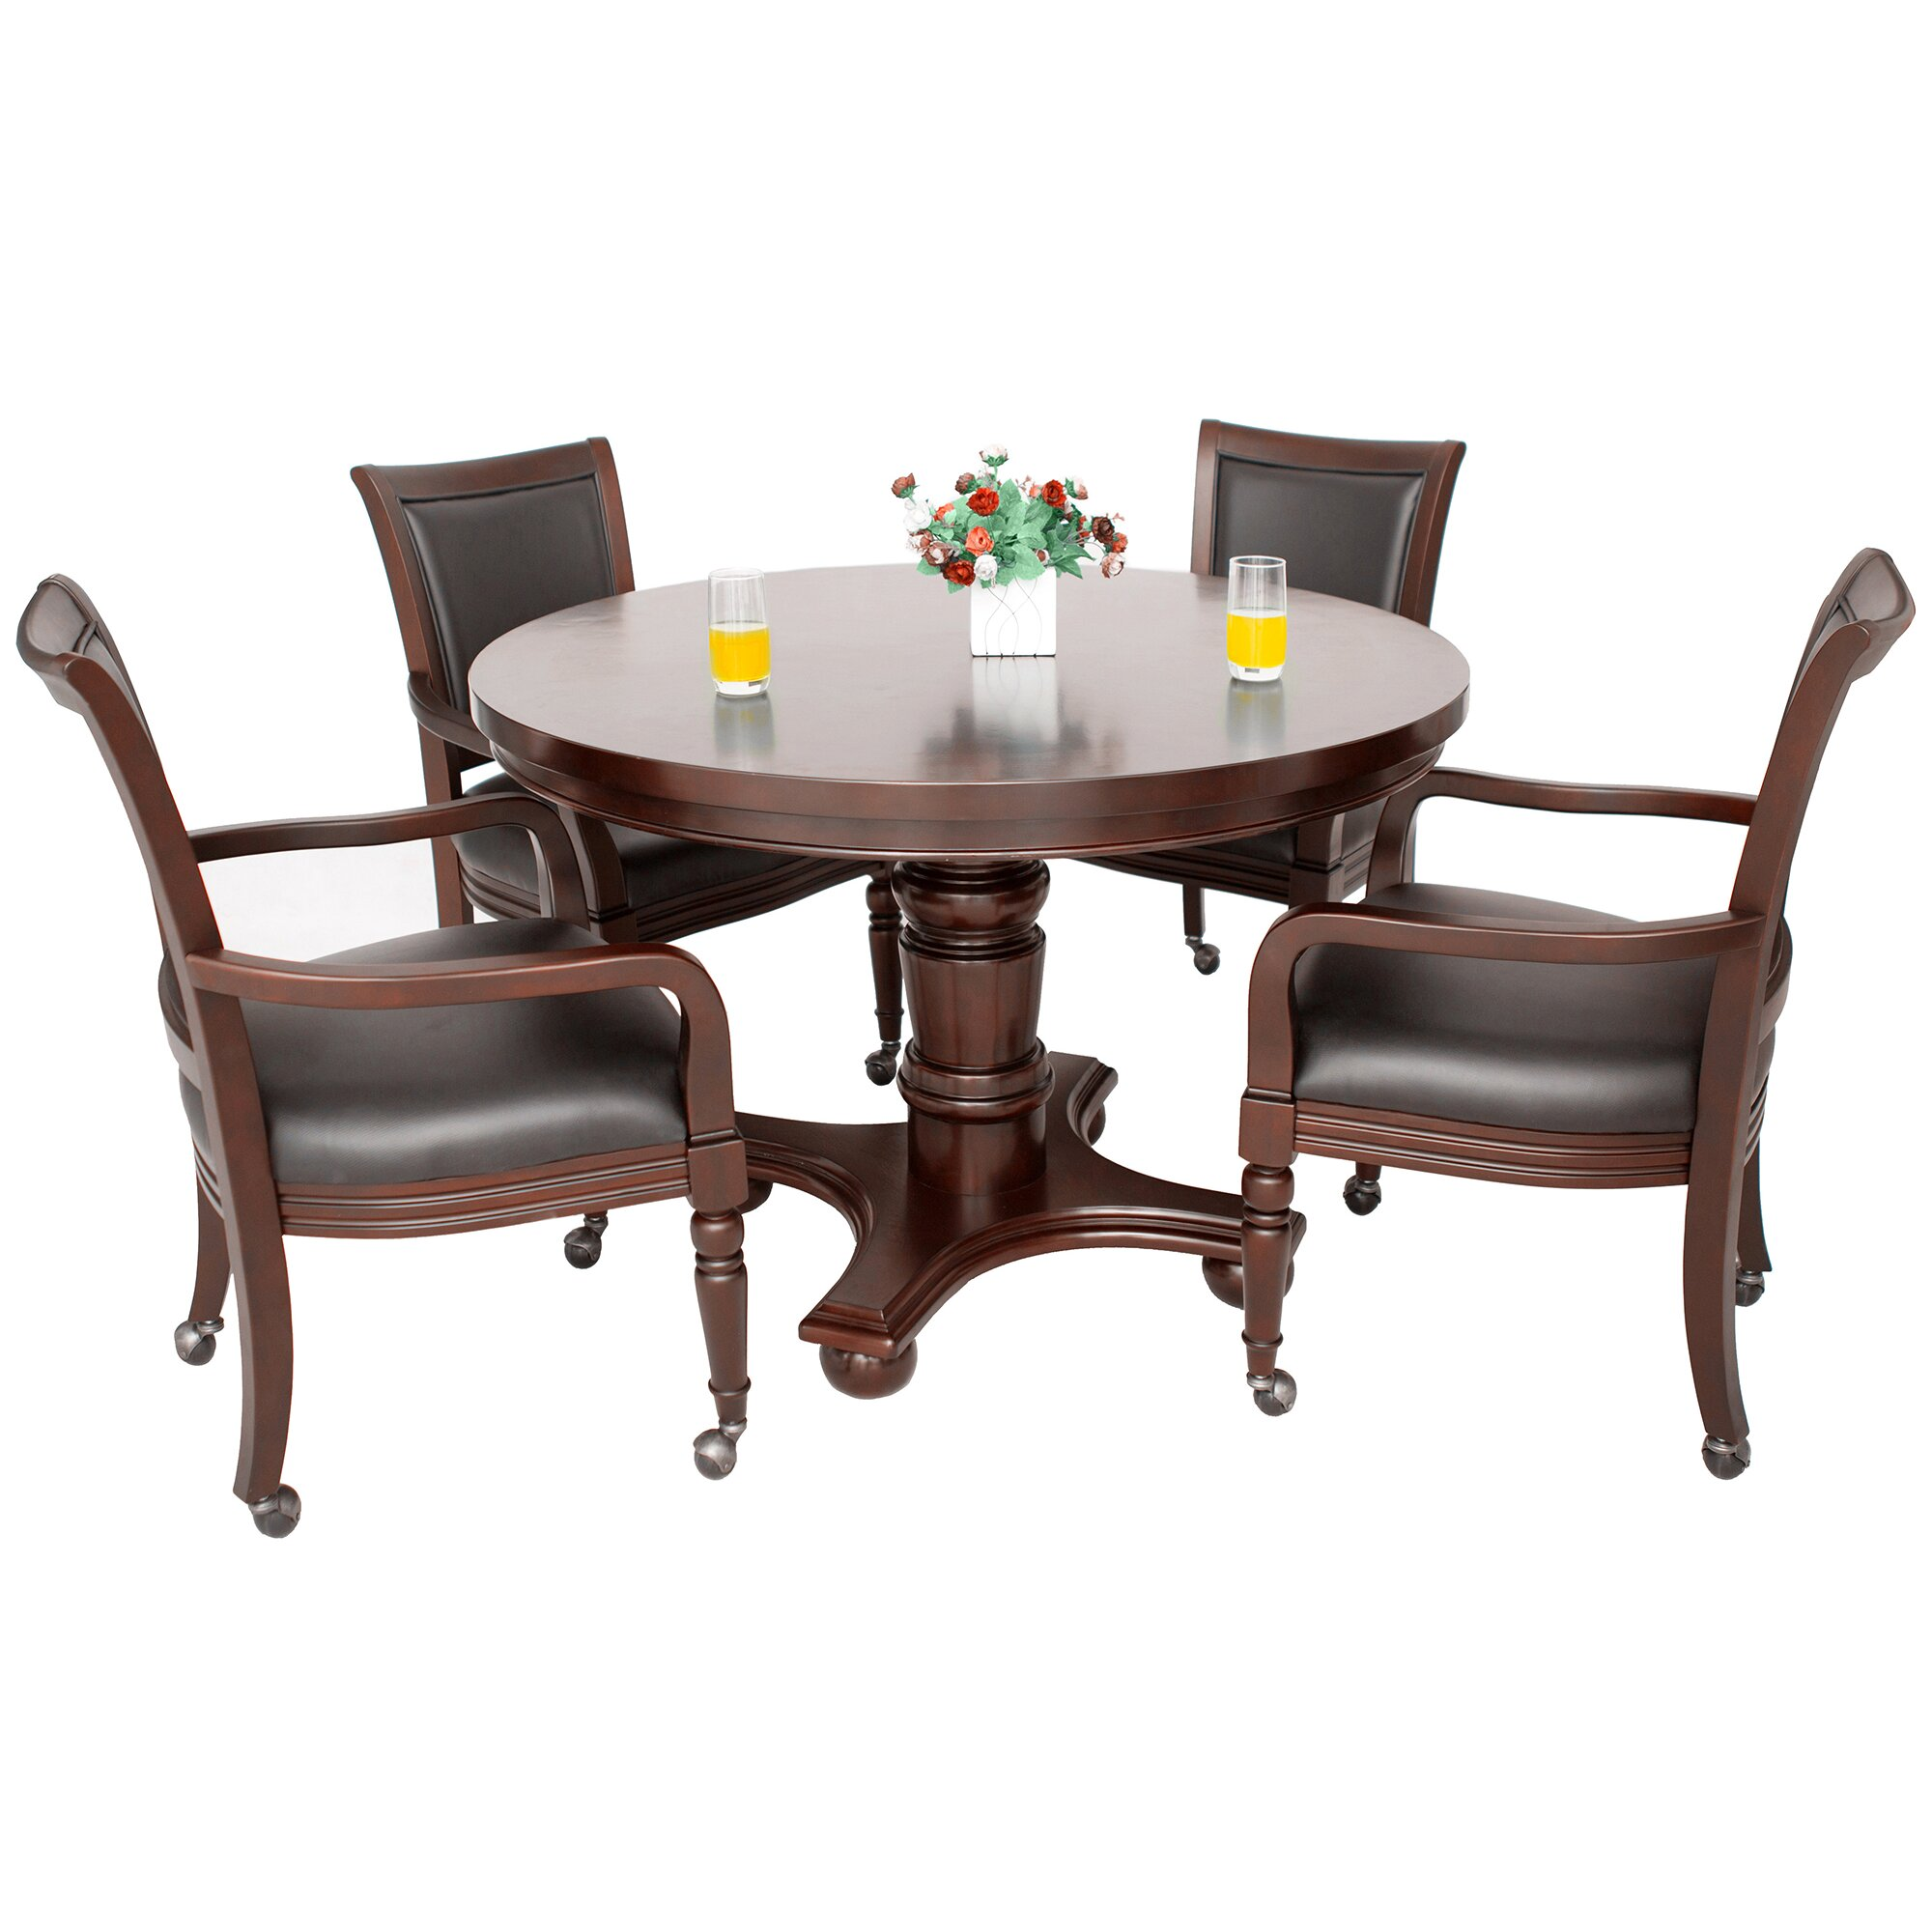 Mitchell 5 pcs set game table and 4 chairs coaster co - Bridgeport 2in1 Poker Game Table Set Coaster Turk 5 Piece